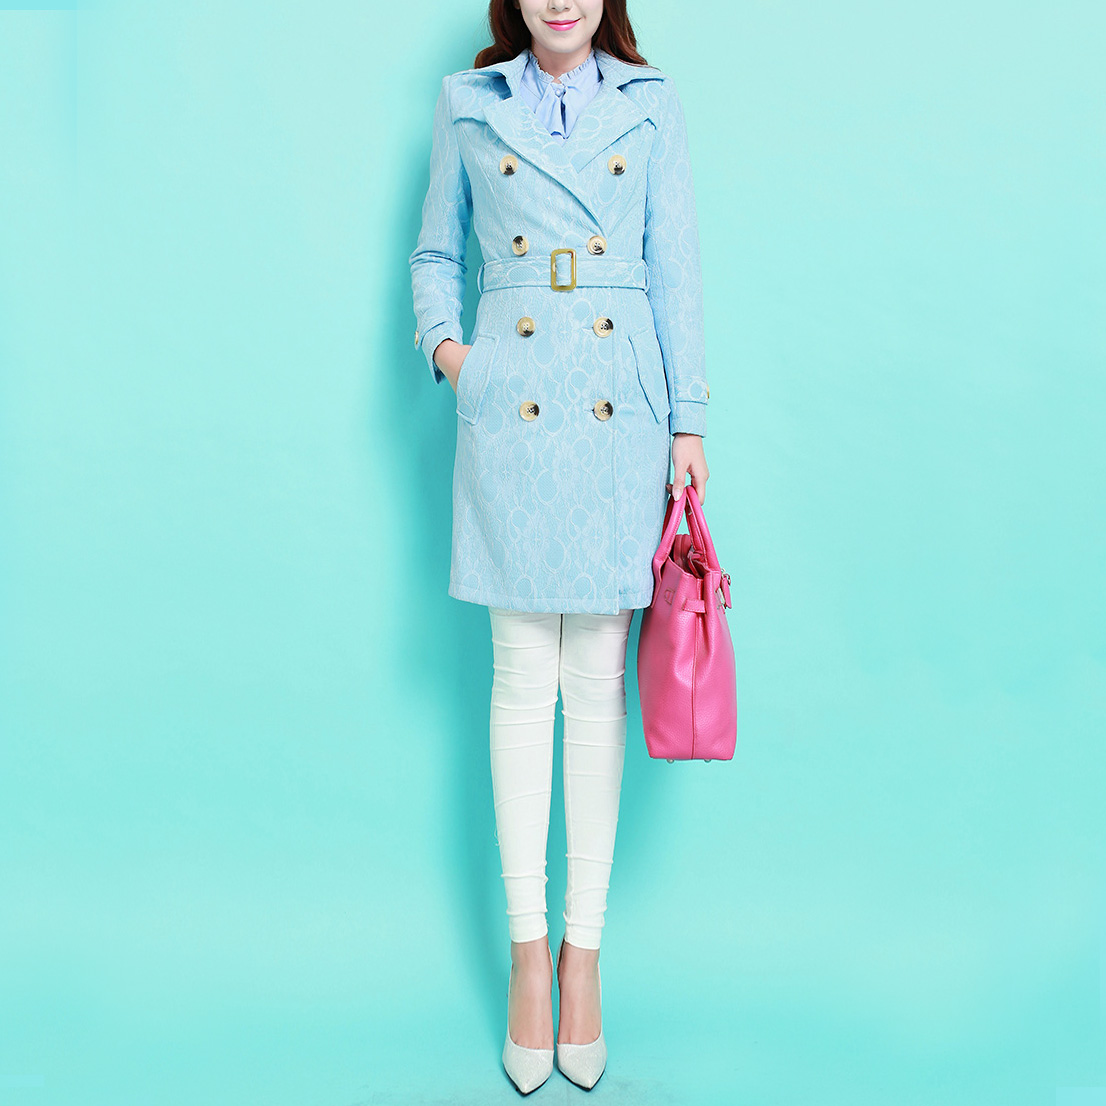 Breeze 2015 autumn and winter large lapel 2015 spring british style high fashion embroidery Long Lace Trench Coat with belt 3XLОдежда и ак�е��уары<br><br><br>Aliexpress